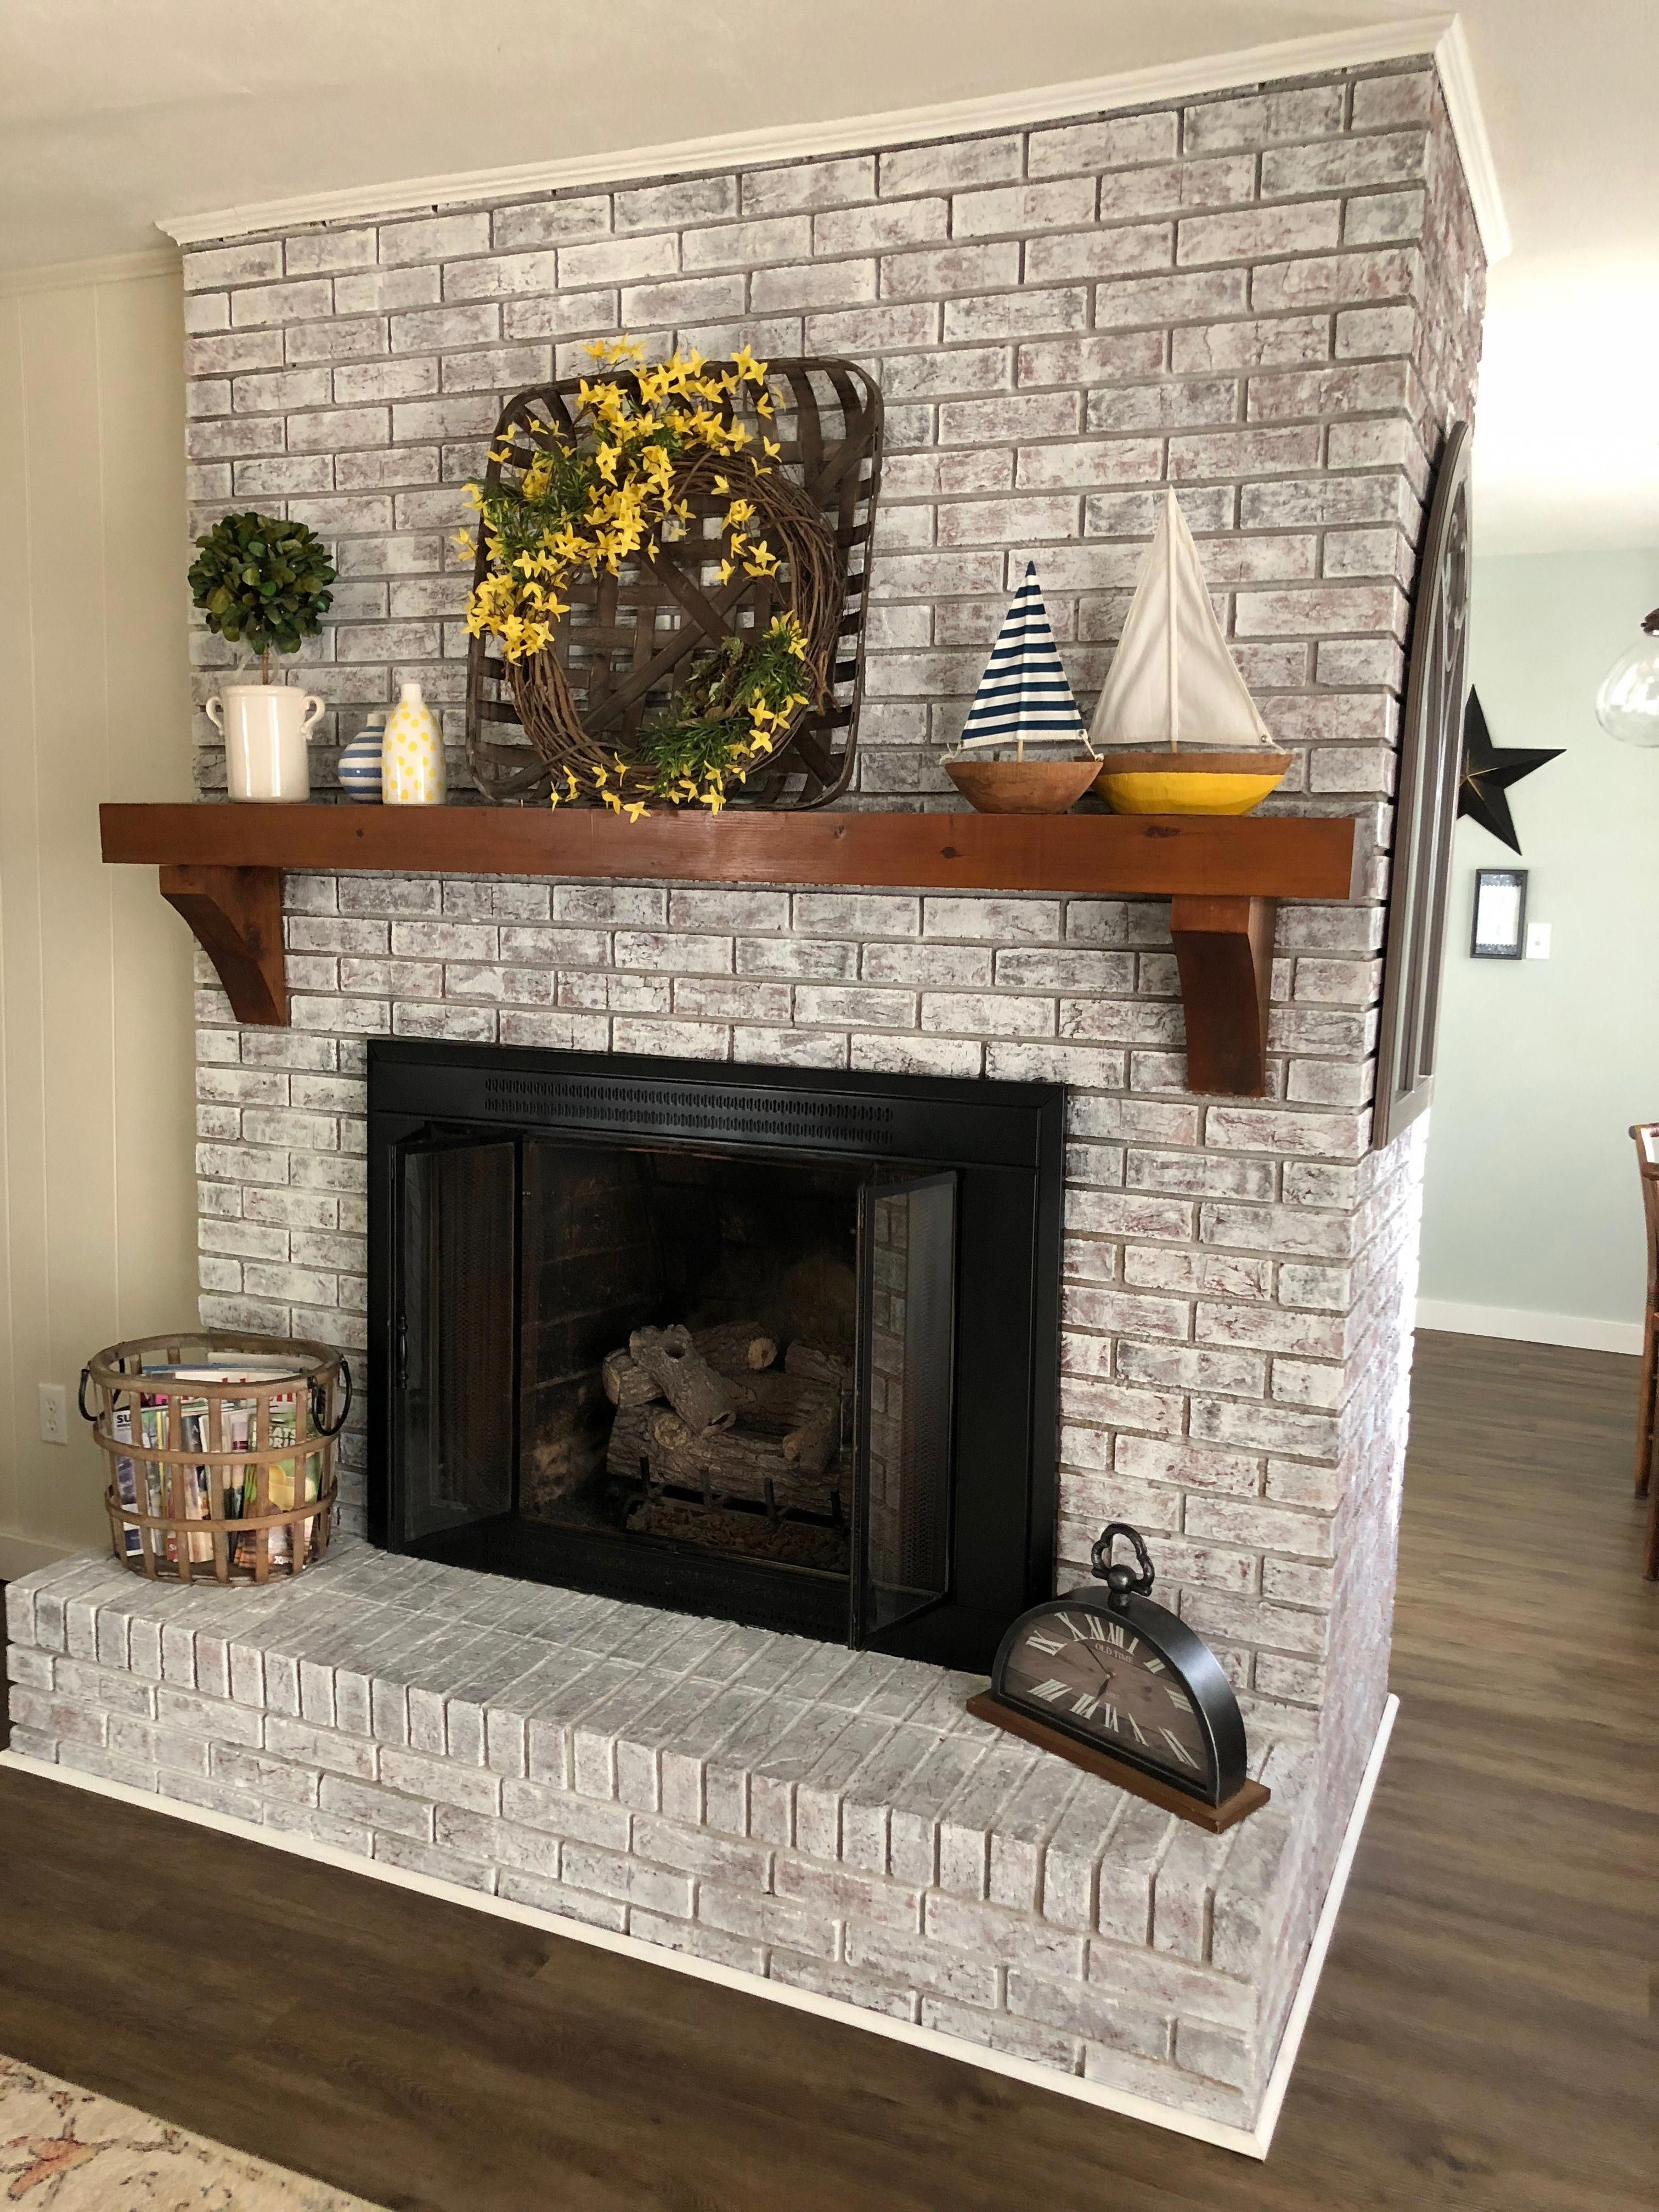 Colors to Paint Brick Fireplace Fresh Painted Brick Fireplace Sw Pure White Over Dark Red Brick